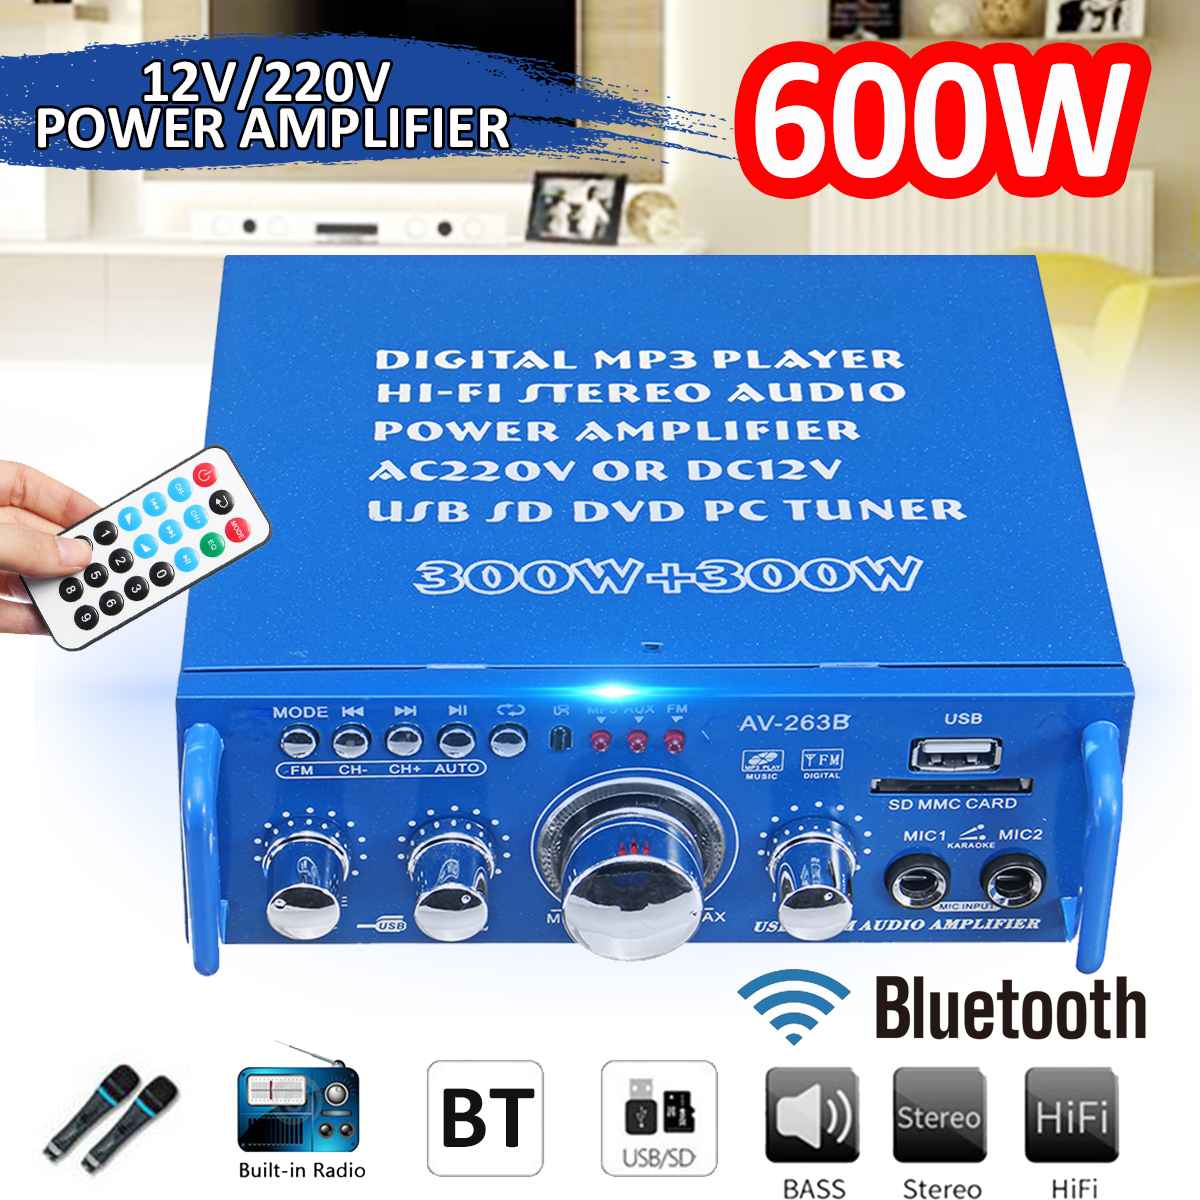 12V/220V 600W 2CH Car Home Power Amplifier Audio HIFI Theater Sound System FM Stereo Radio Bluetooth Mini Amplifiers